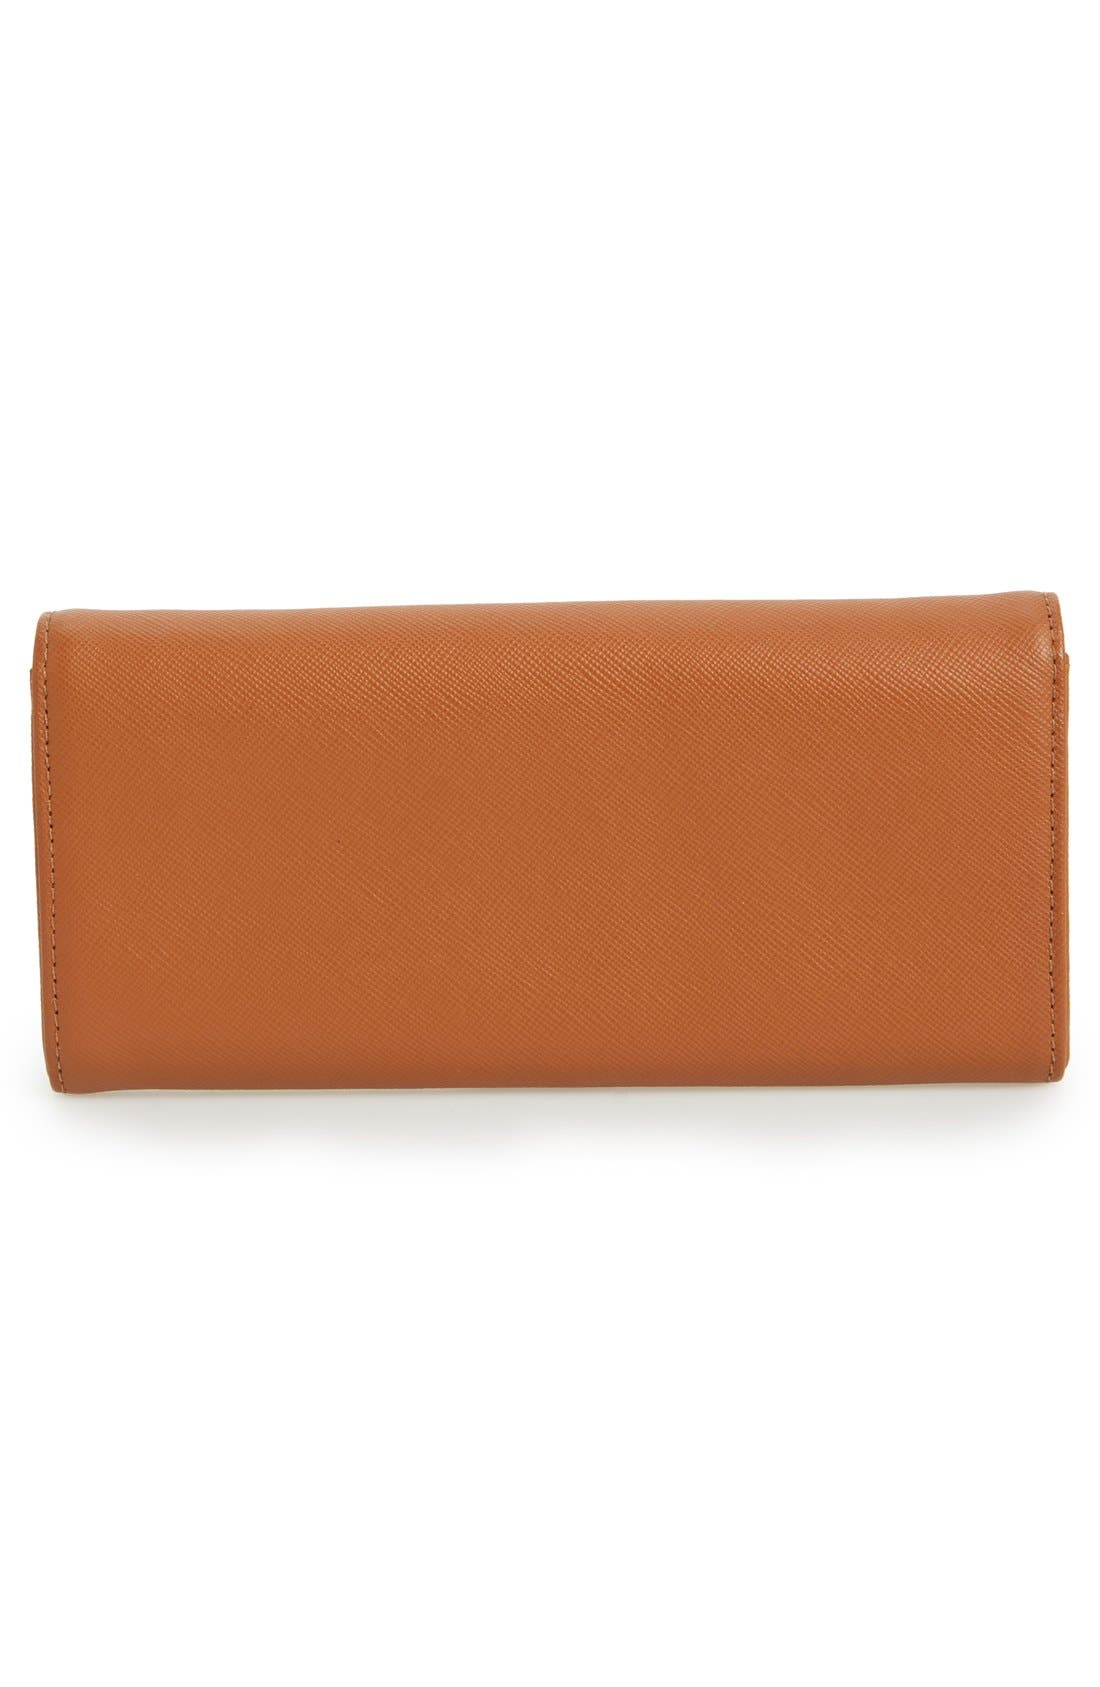 Alternate Image 3  - Tory Burch 'Robinson' Envelope Continental Wallet